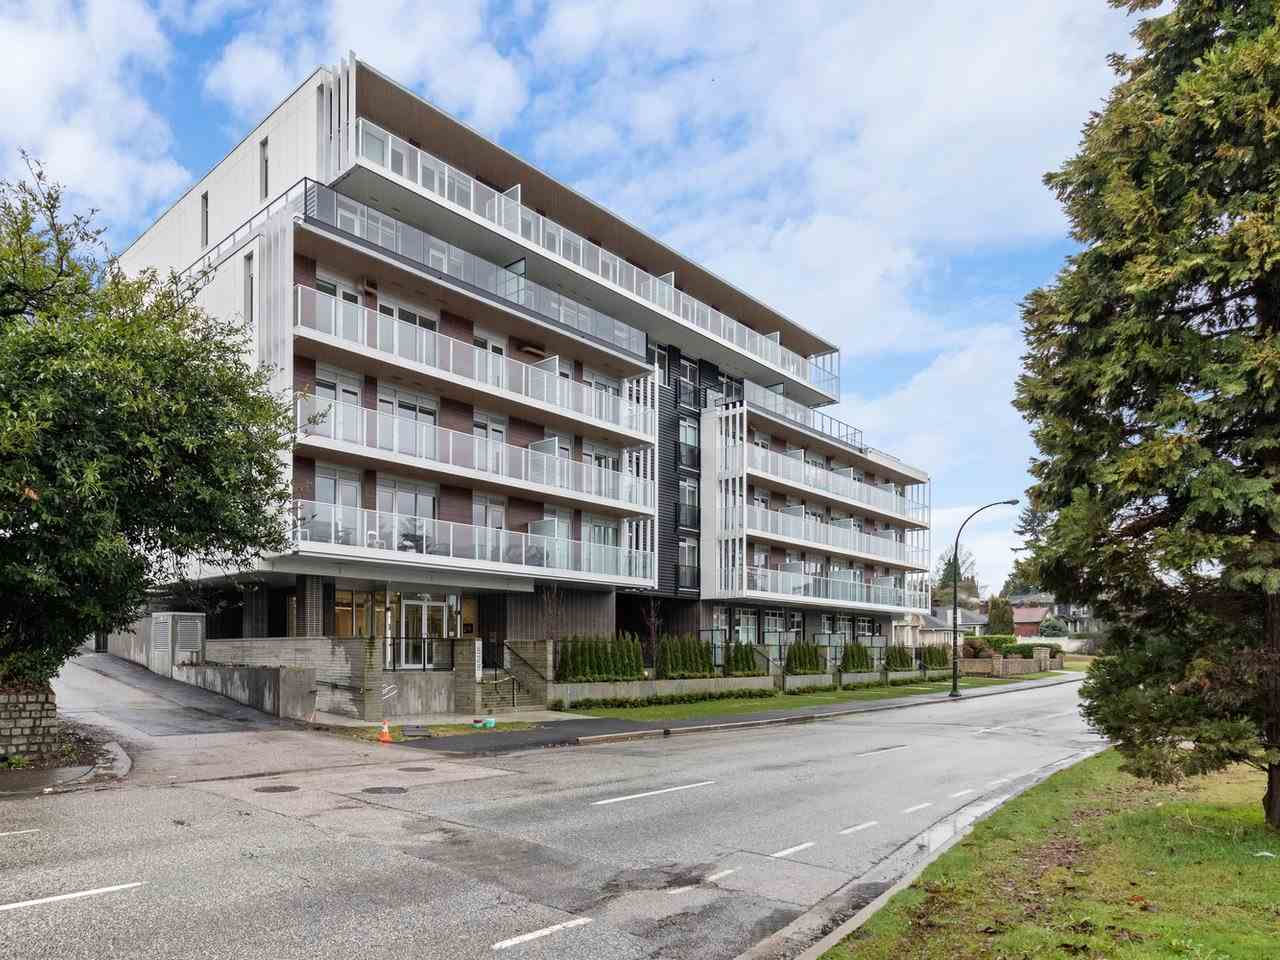 412 528 W KING EDWARD AVENUE - Cambie Apartment/Condo for sale, 3 Bedrooms (R2527462)